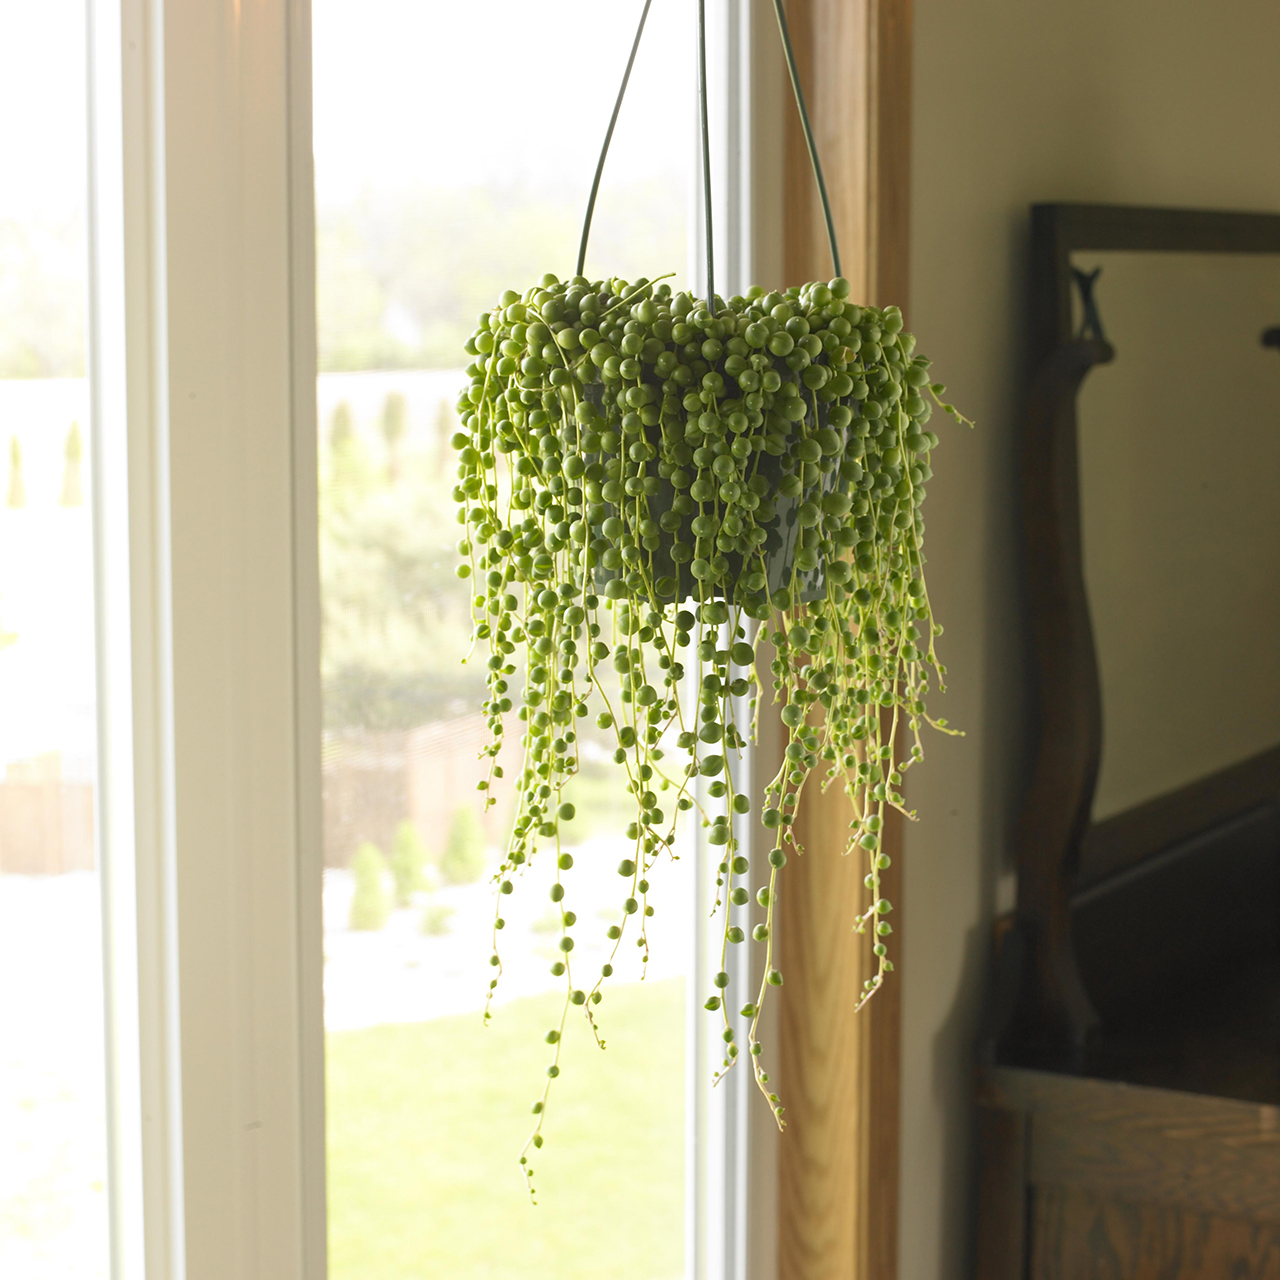 17 Plants Perfect for Hanging in Your Home